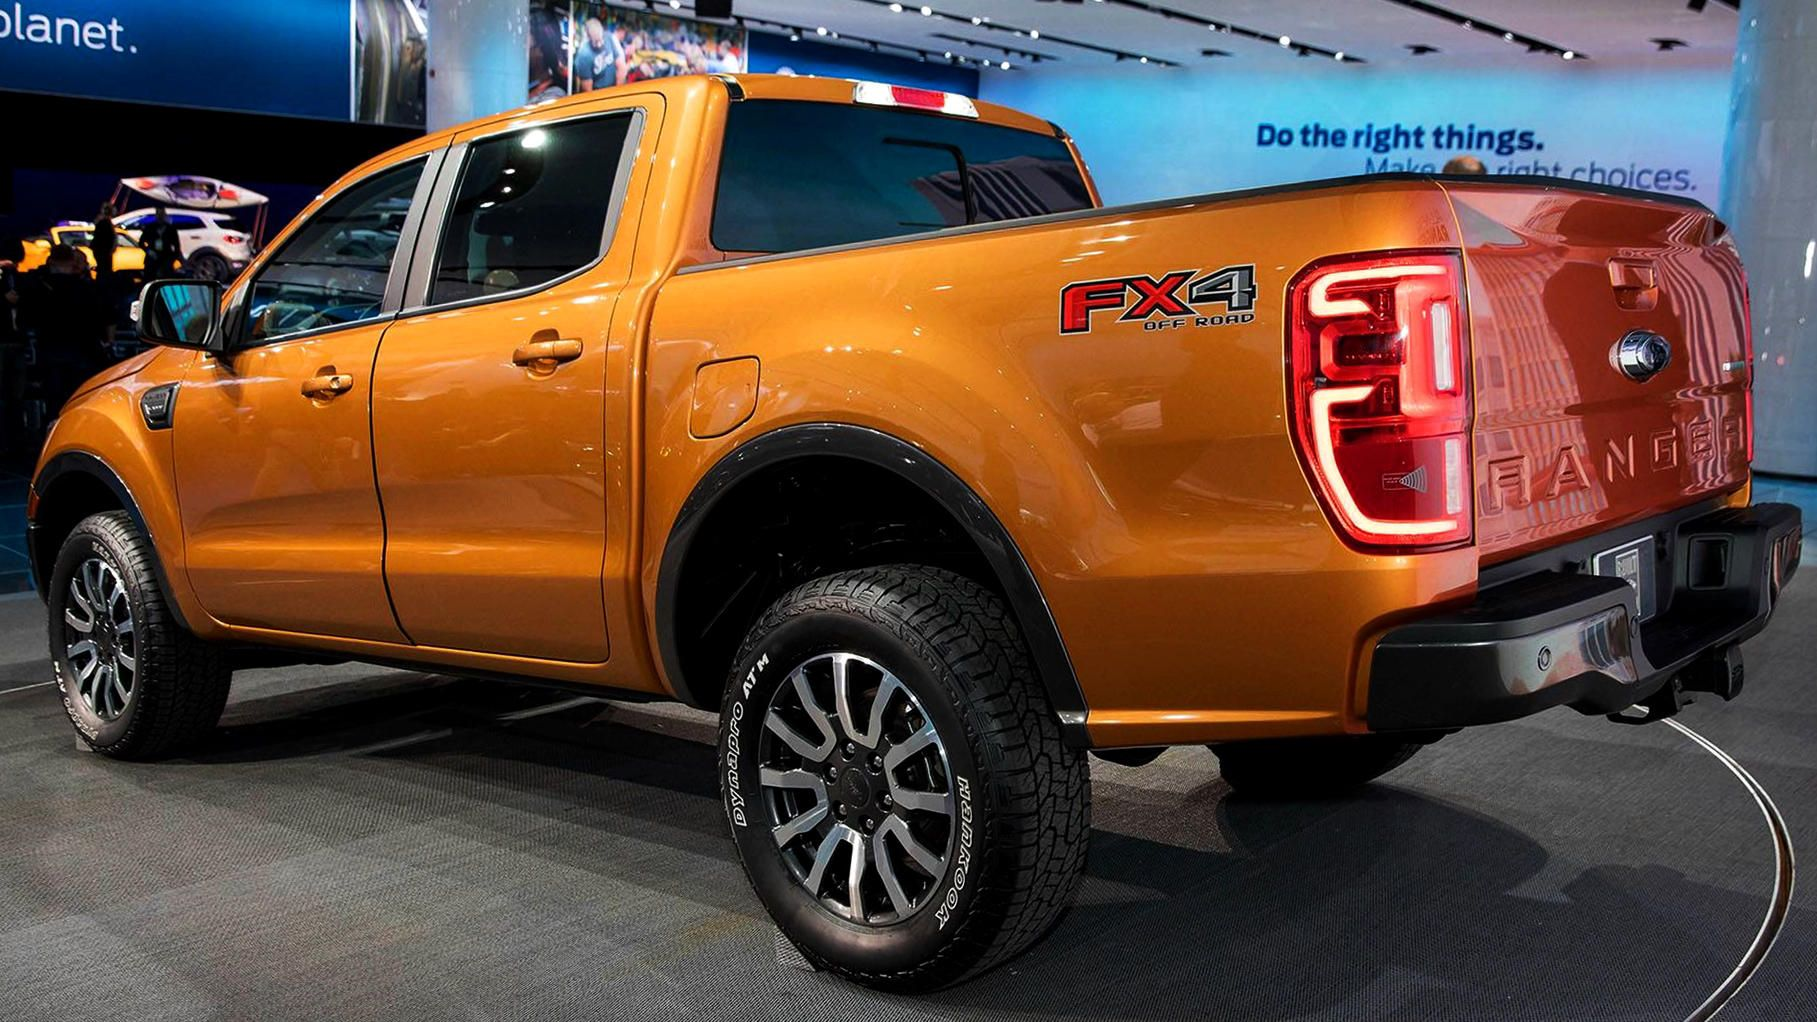 2019 Ford Ranger Ranger Raptor Everything You Need To Know